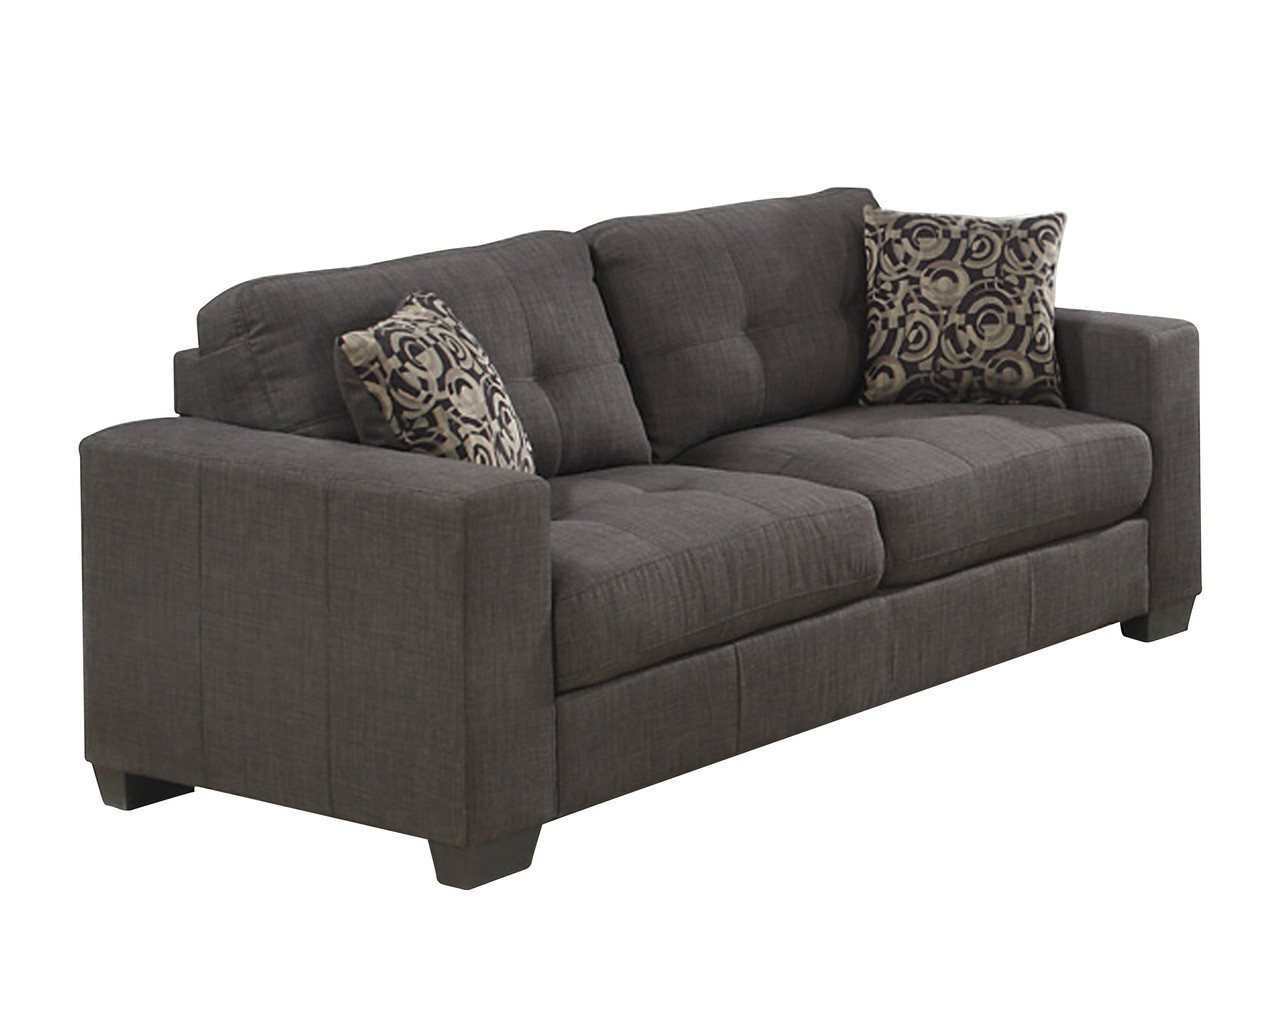 grey fabric sofa next antique chippendale value lacey pallucci furniture or couch in loading zoom